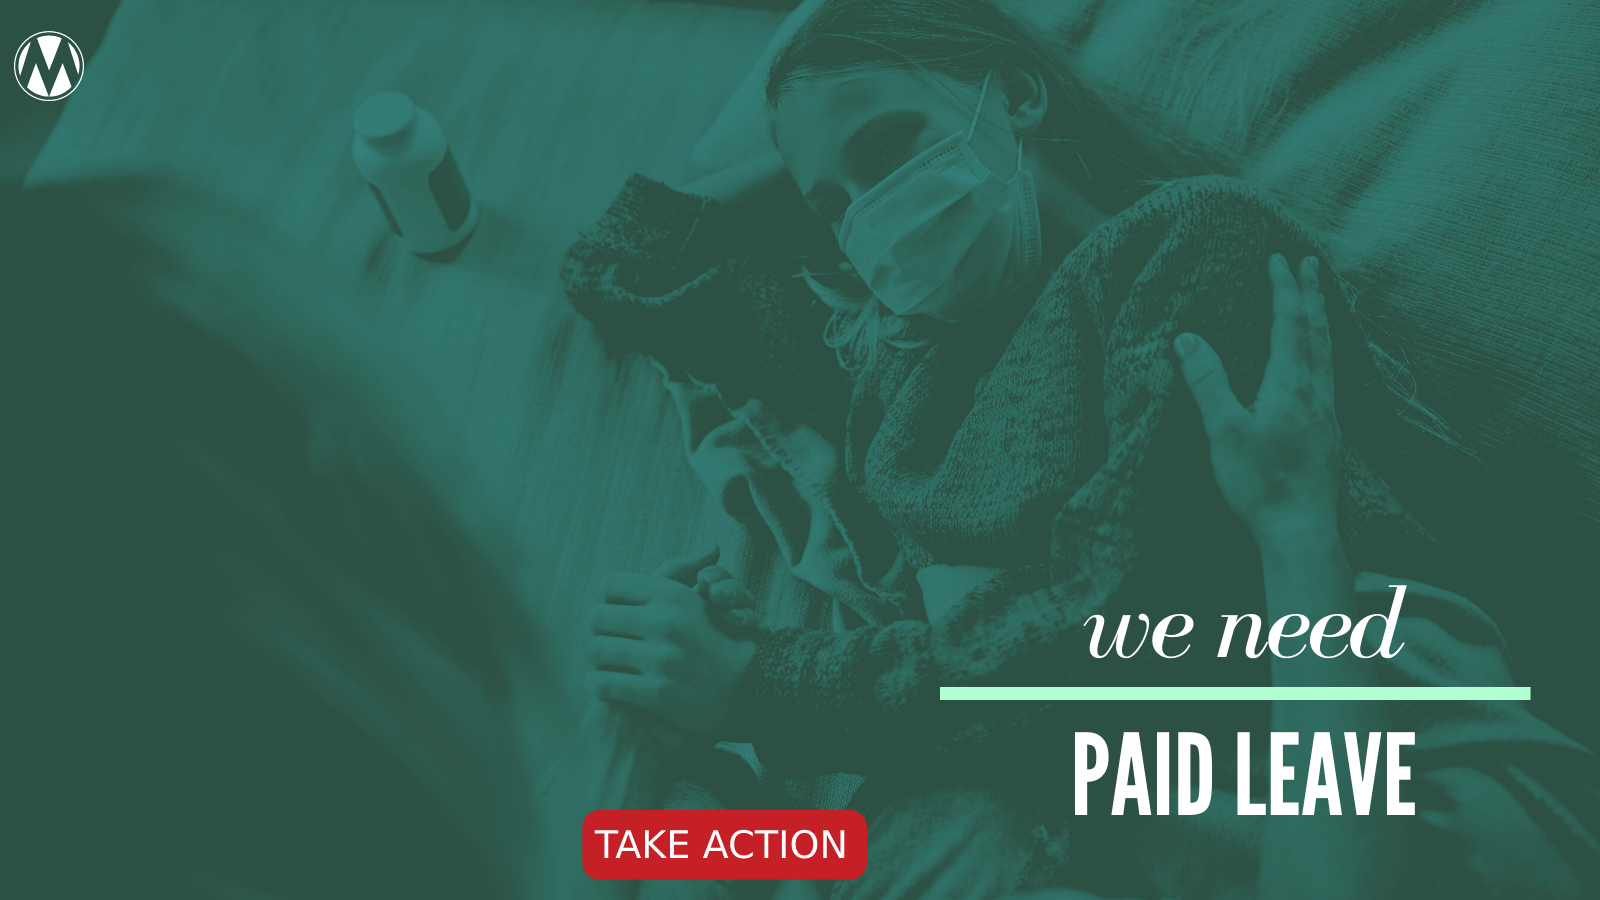 paidleave